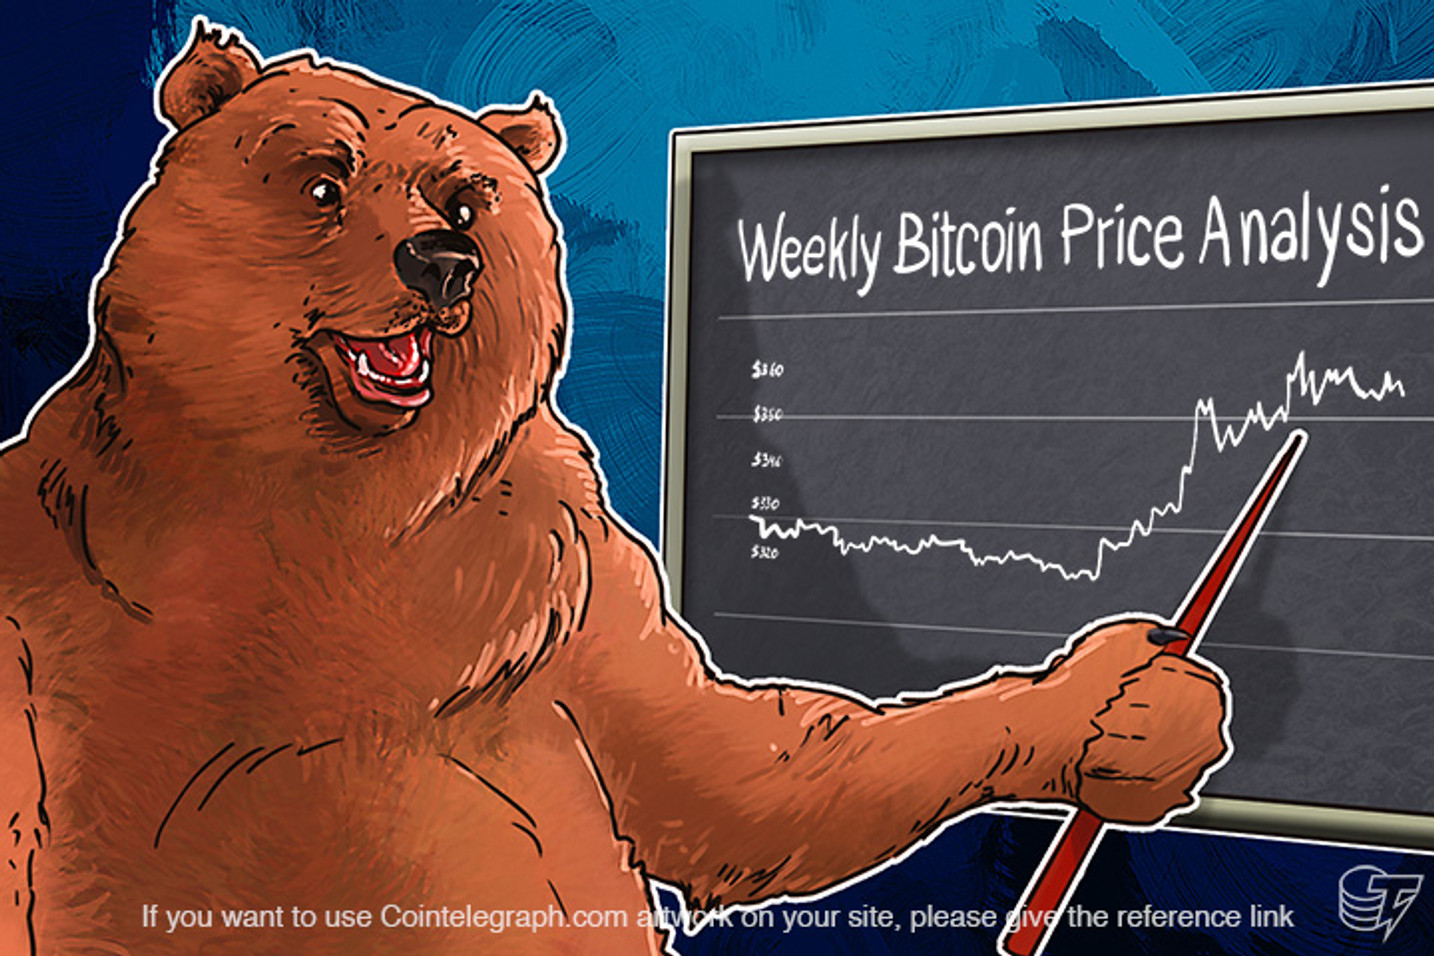 Weekly Bitcoin Price Analysis: Bulls and Bears versus ISIS terrorists